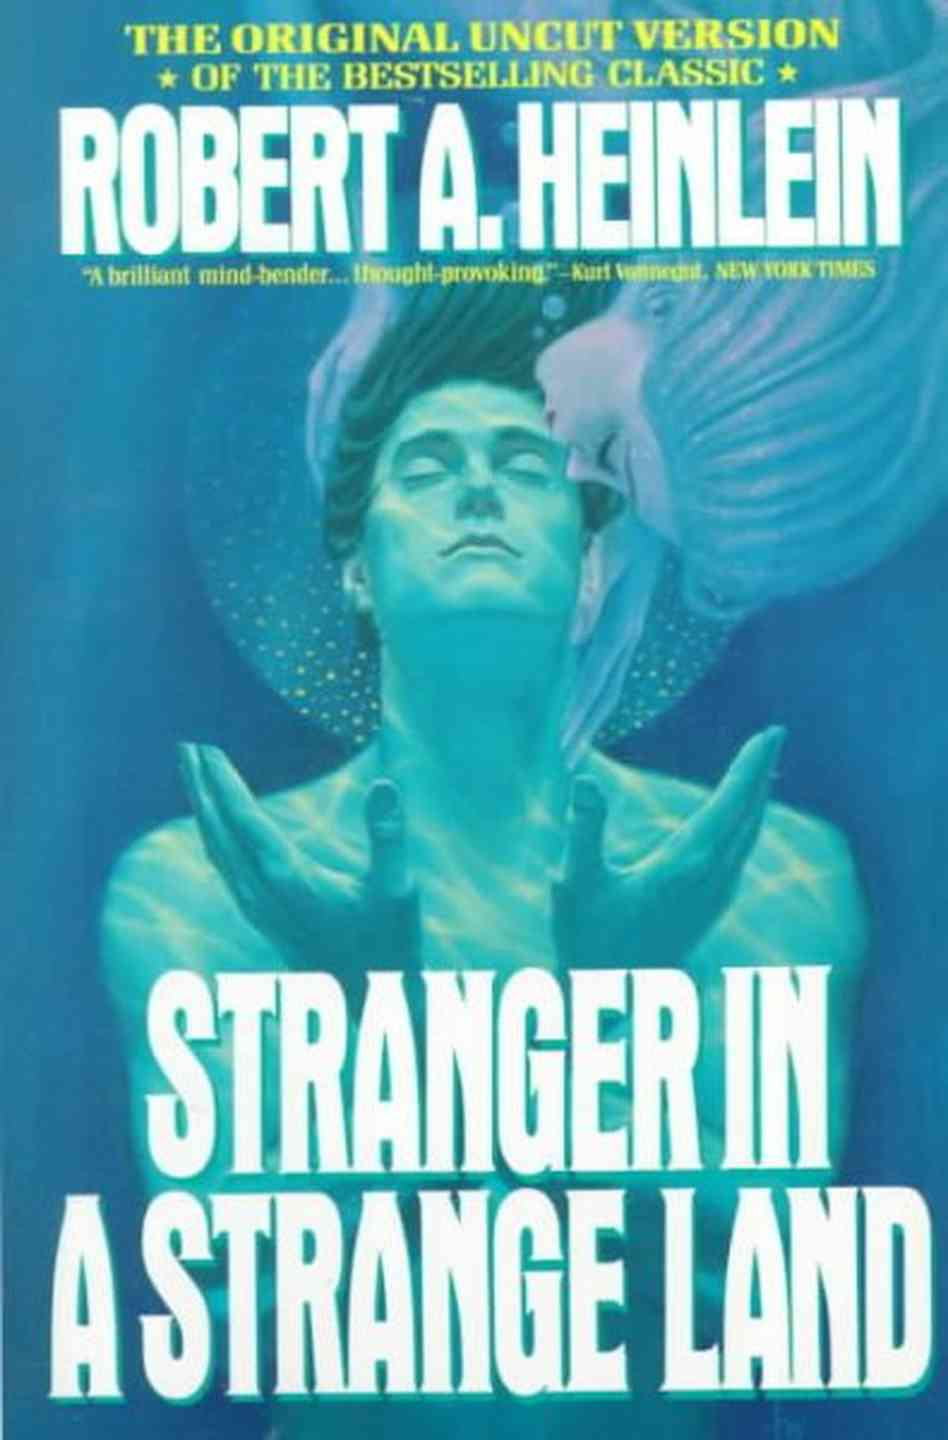 Book Review: Stranger in a Strange Land, by Robert A. Heinlein